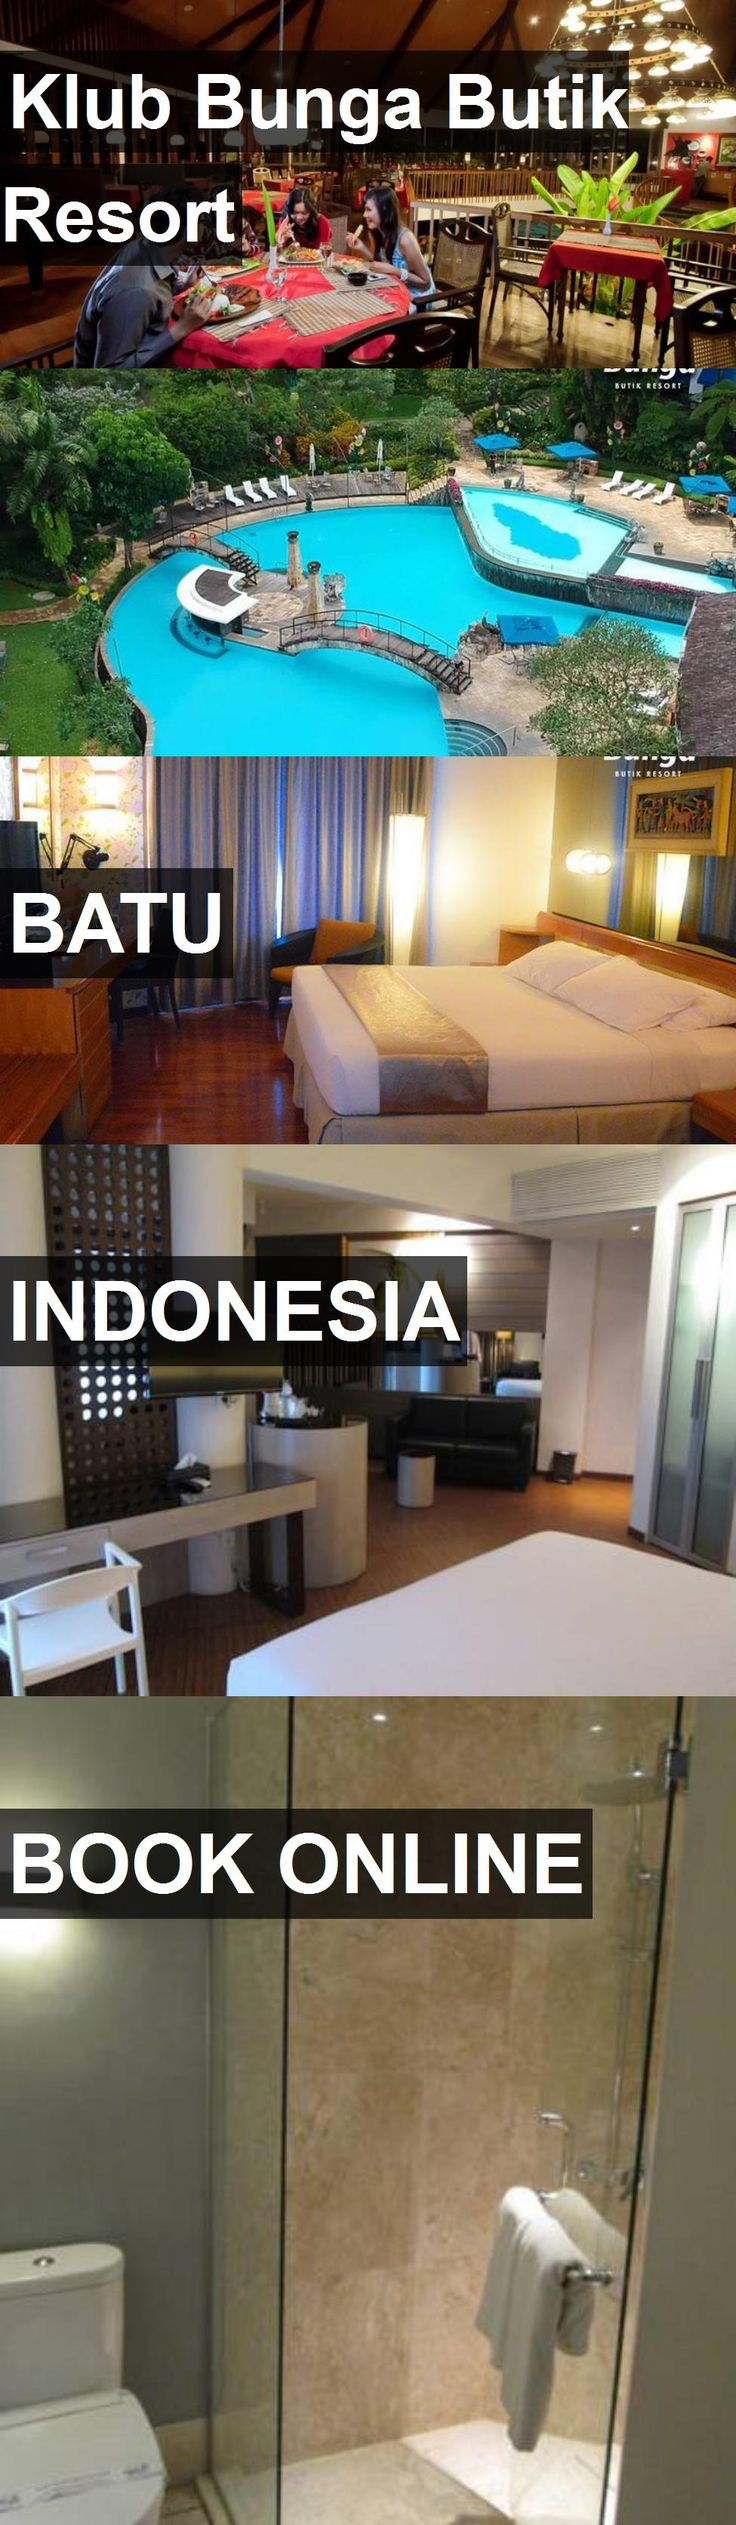 Hotel Klub Bunga Butik Resort in Batu, Indonesia. For more information, photos, reviews and best prices please follow the link. #Indonesia #Batu #travel #vacation #hotel